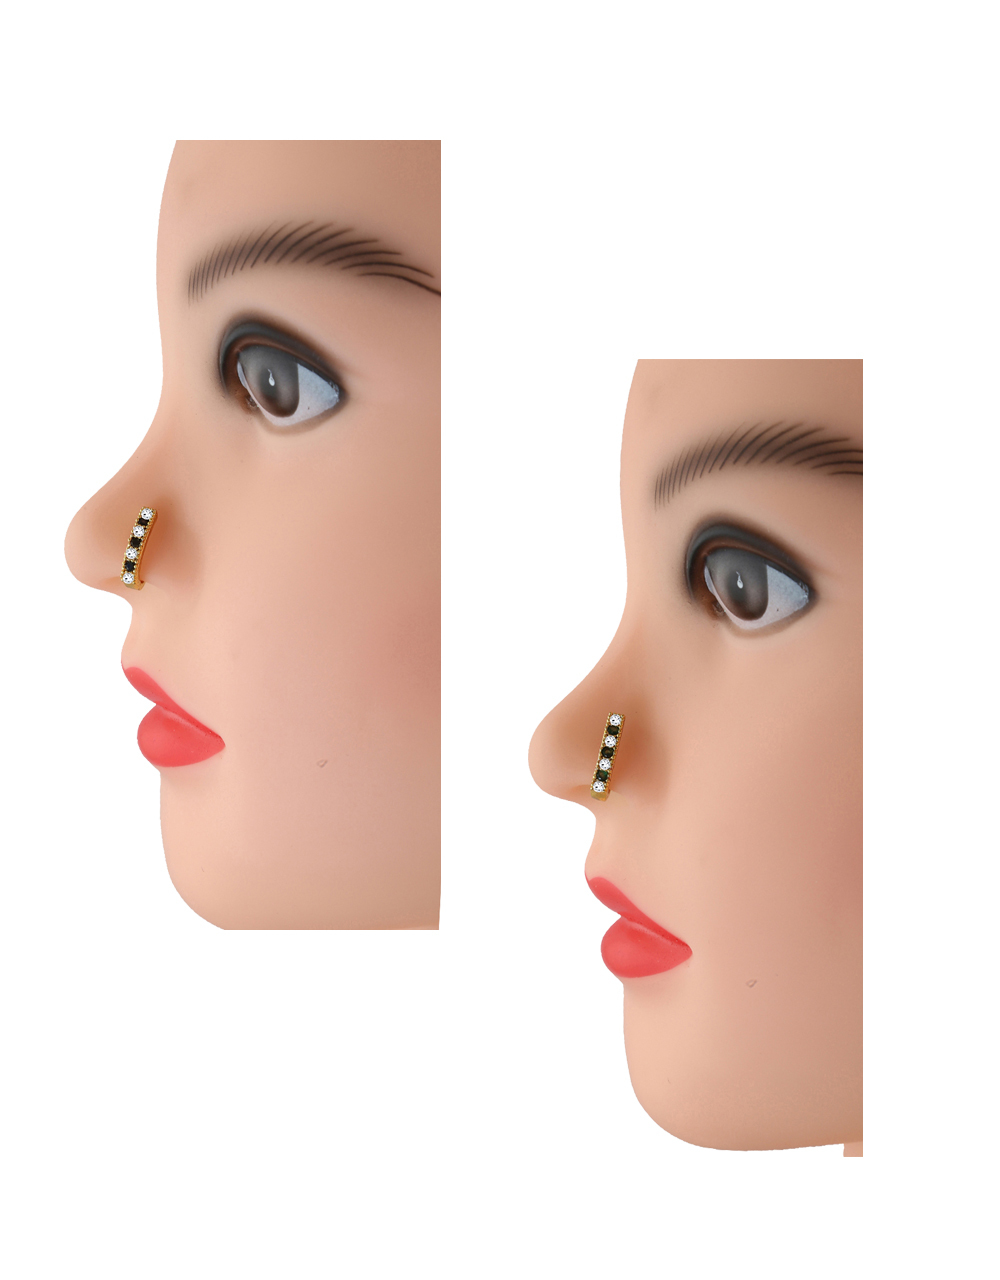 Blue-Green Combiaation Nose Stud Designs For Girls